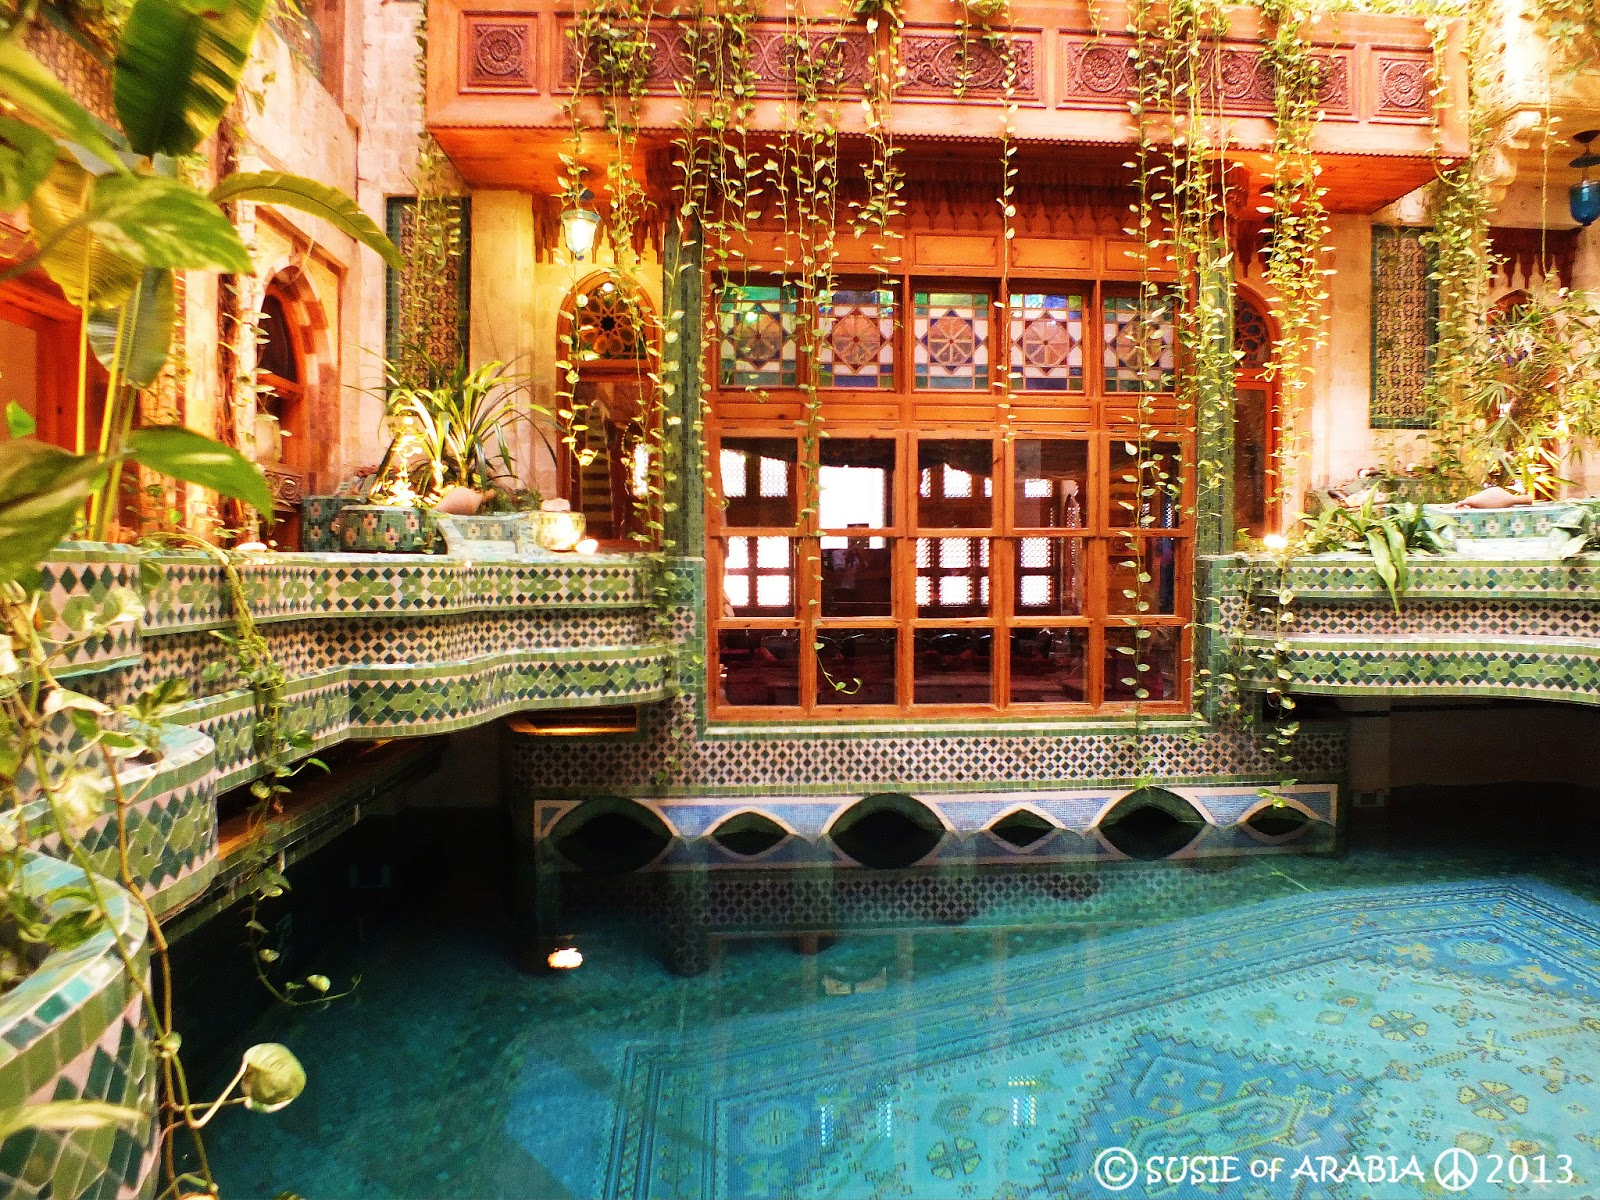 Jeddah Daily Photo: Jeddah: Angawi House Indoor Pool